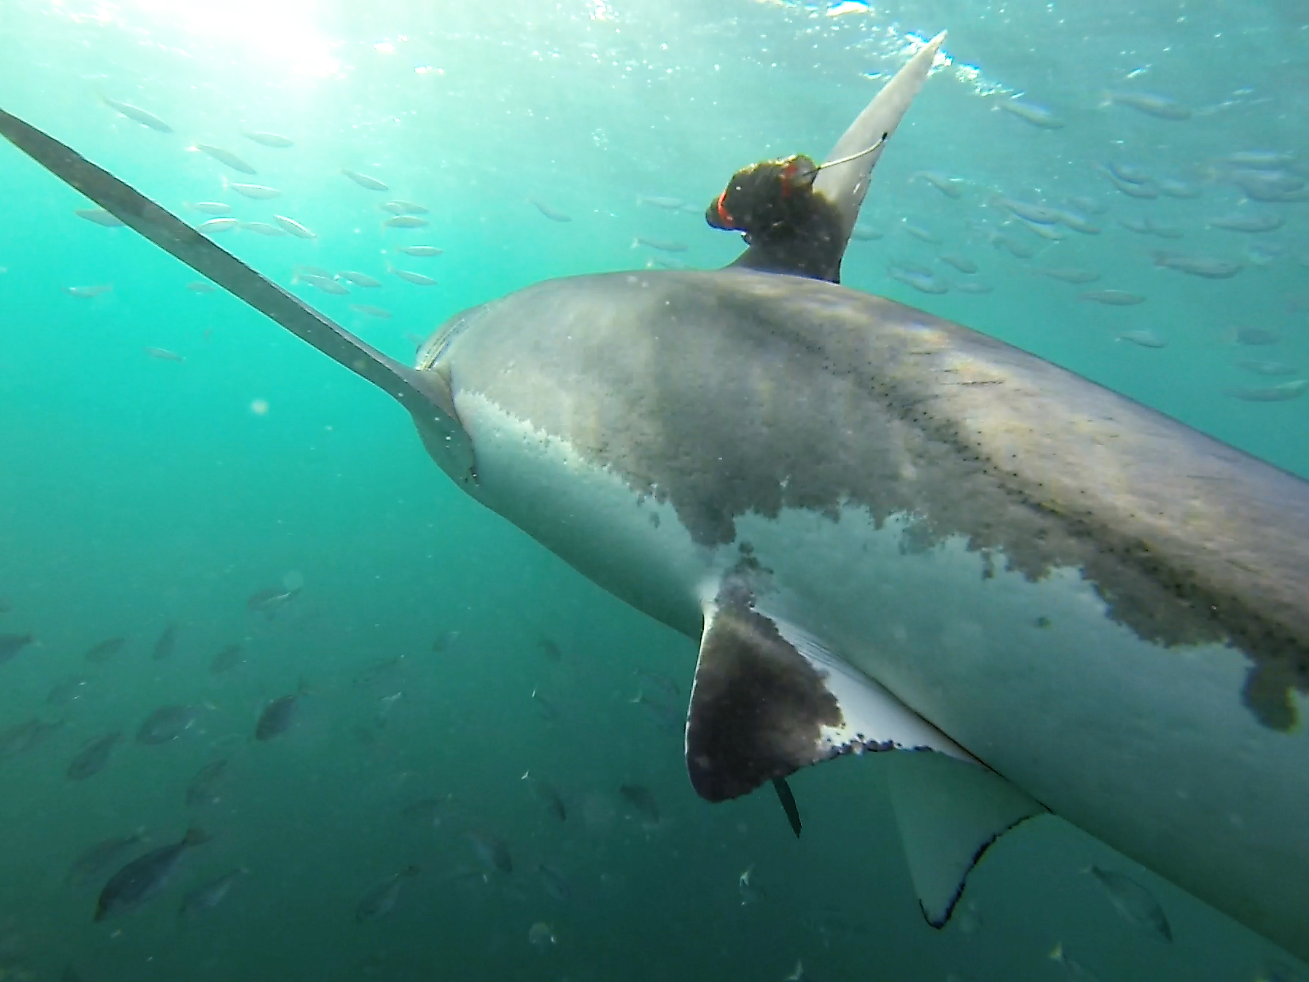 Cameras mounted on great white sharks capture giant